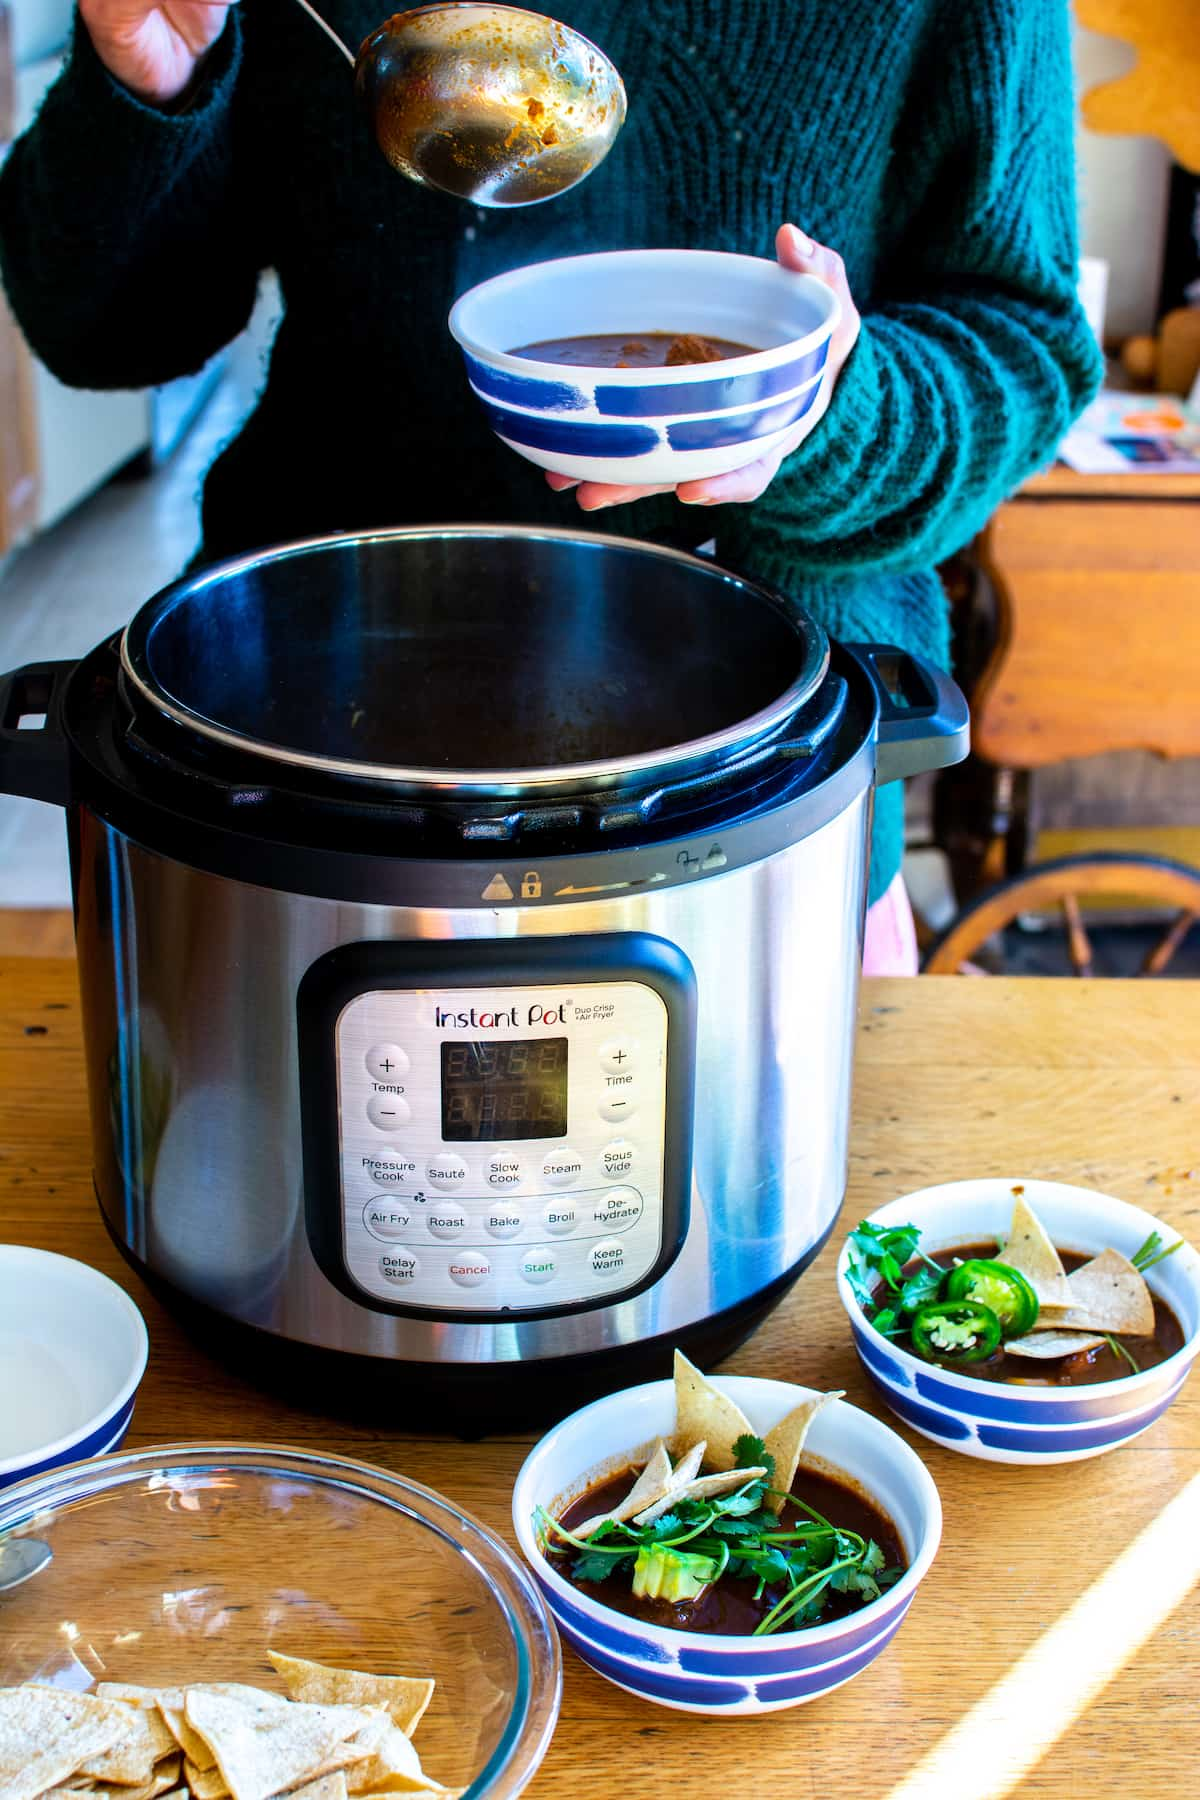 A woman in a green sweater ladling soup into a small bowl out of an Instant Pot sitting on a wood table.